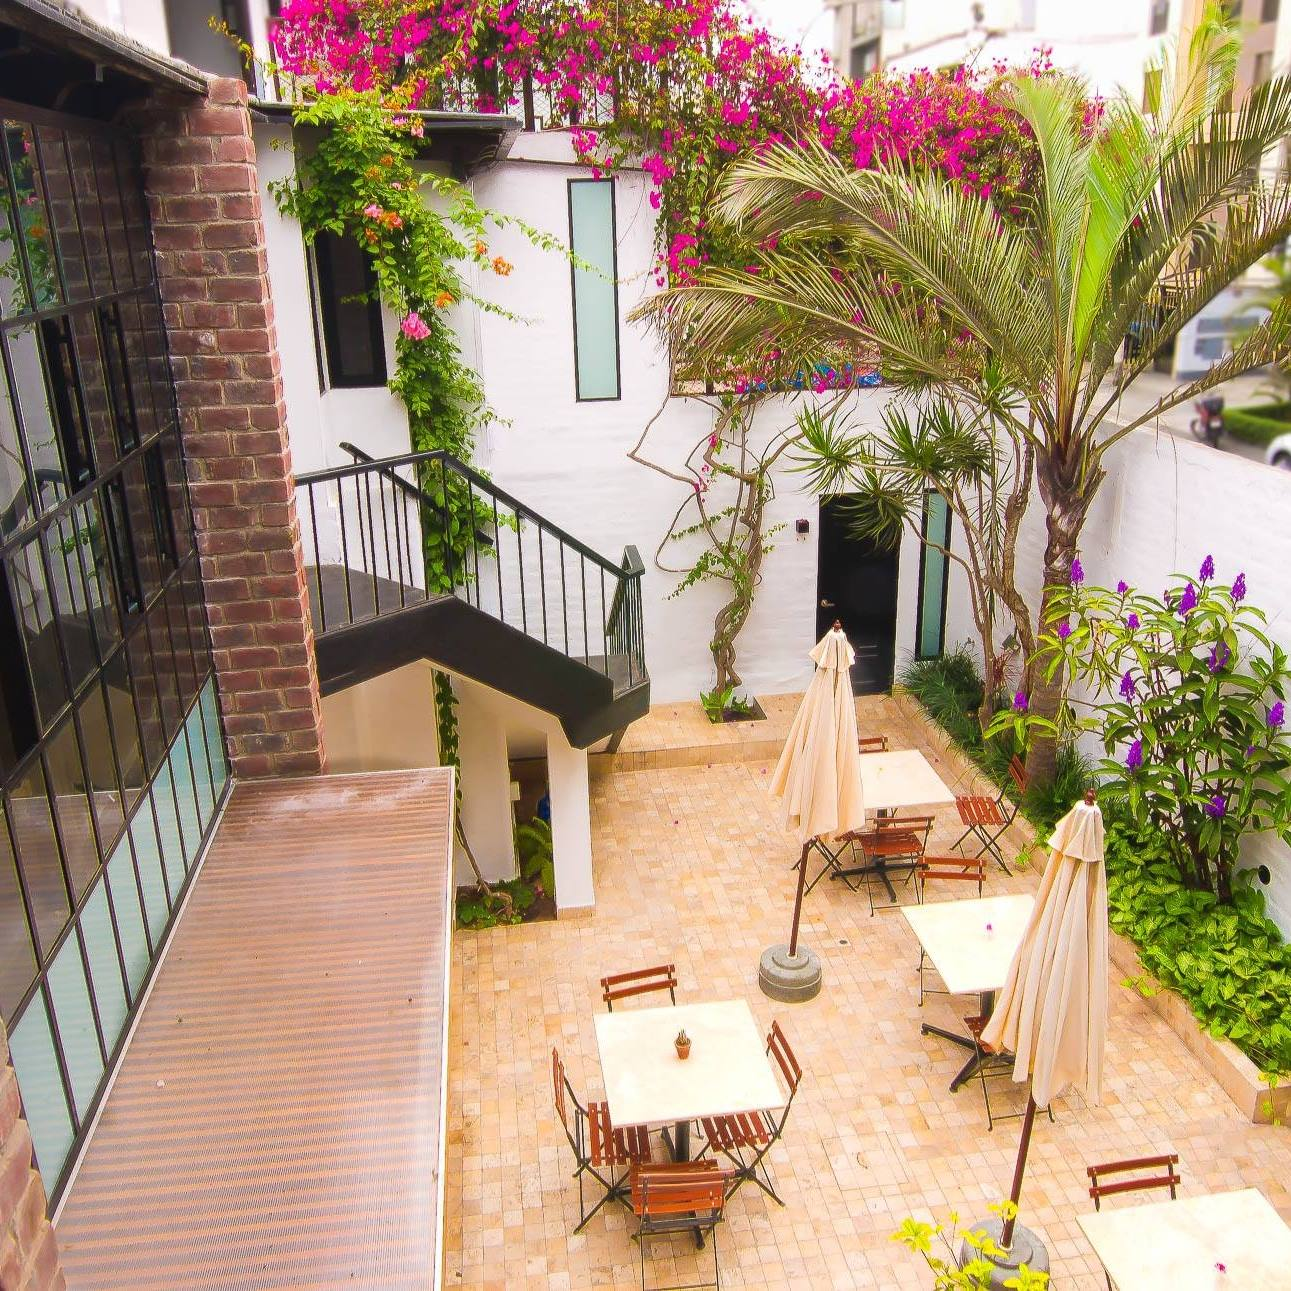 Hotel Boutique_Patio